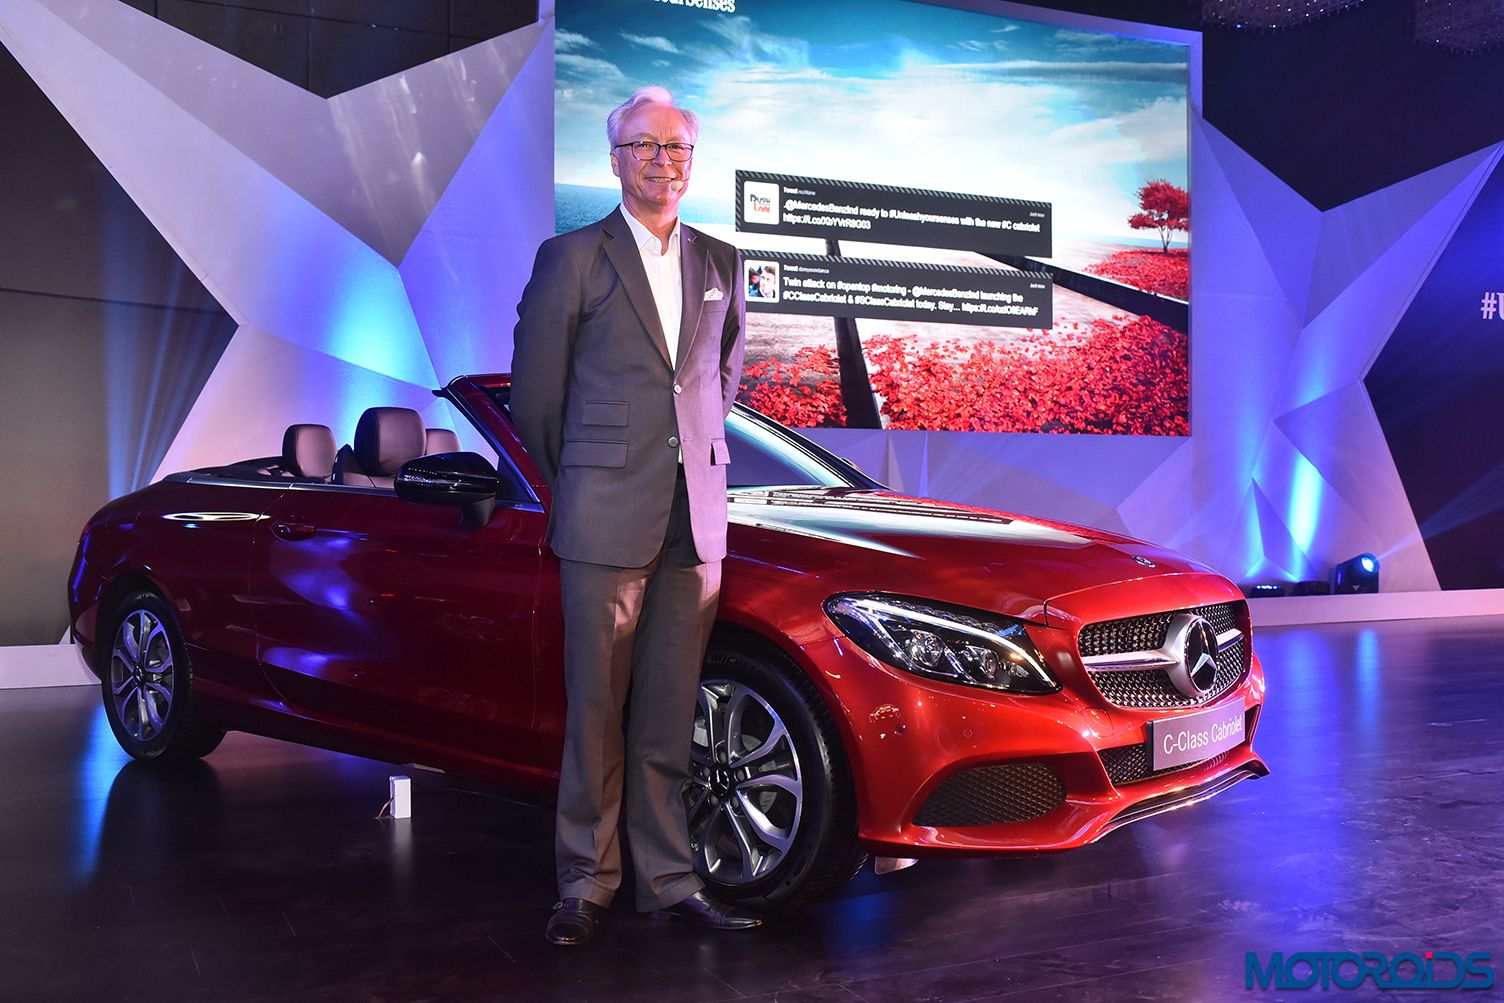 mercedes-benz-c-class-cabriolet-and-s-class-cabriolet-launch-1